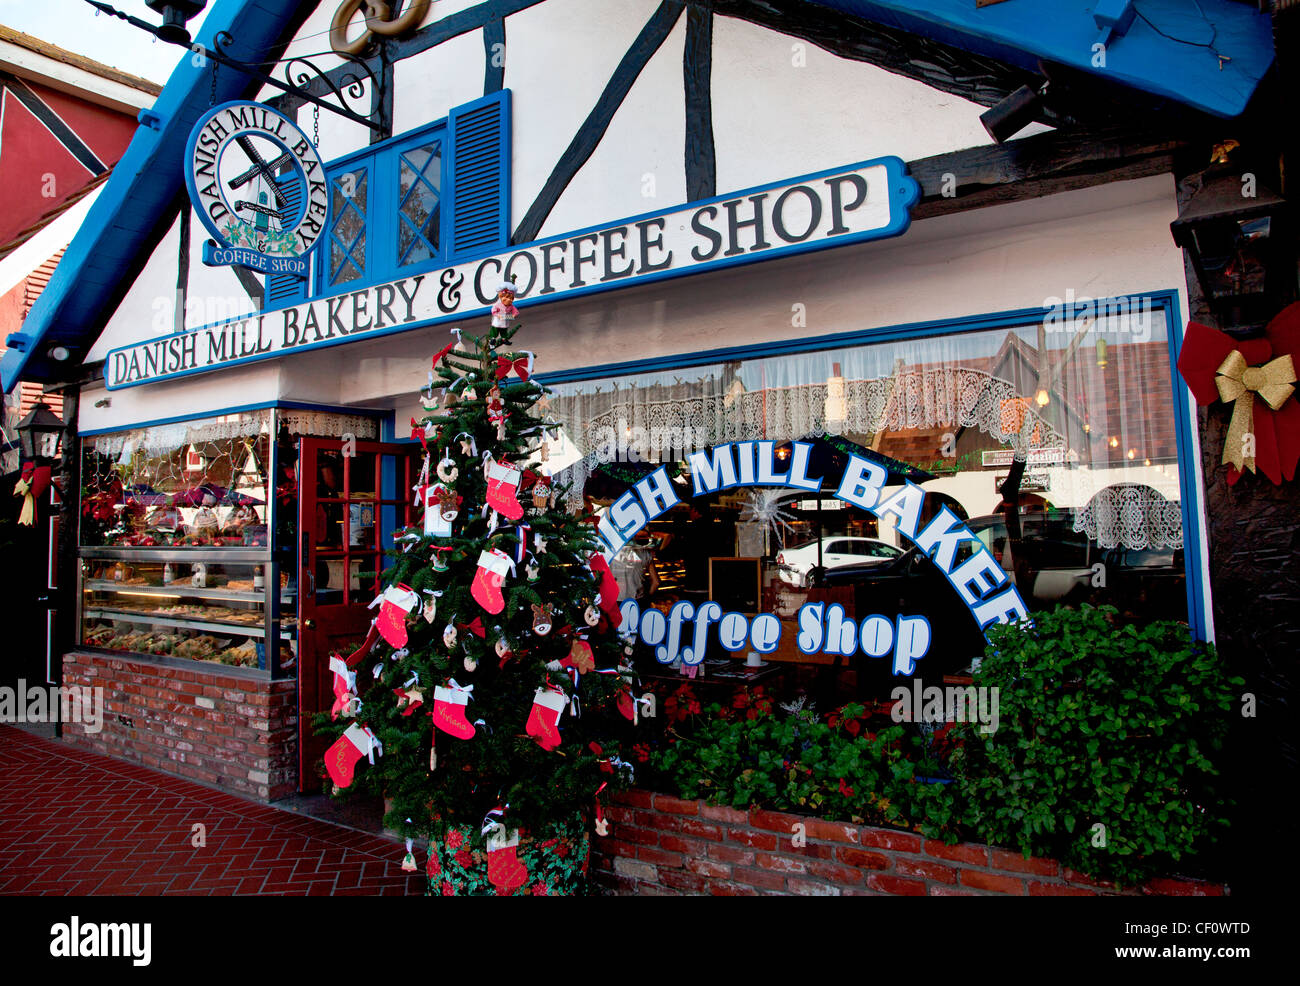 DANISH BAKERY & COFFEE SHOP, SOLVANG,CALIFORNIA, - Stock Image